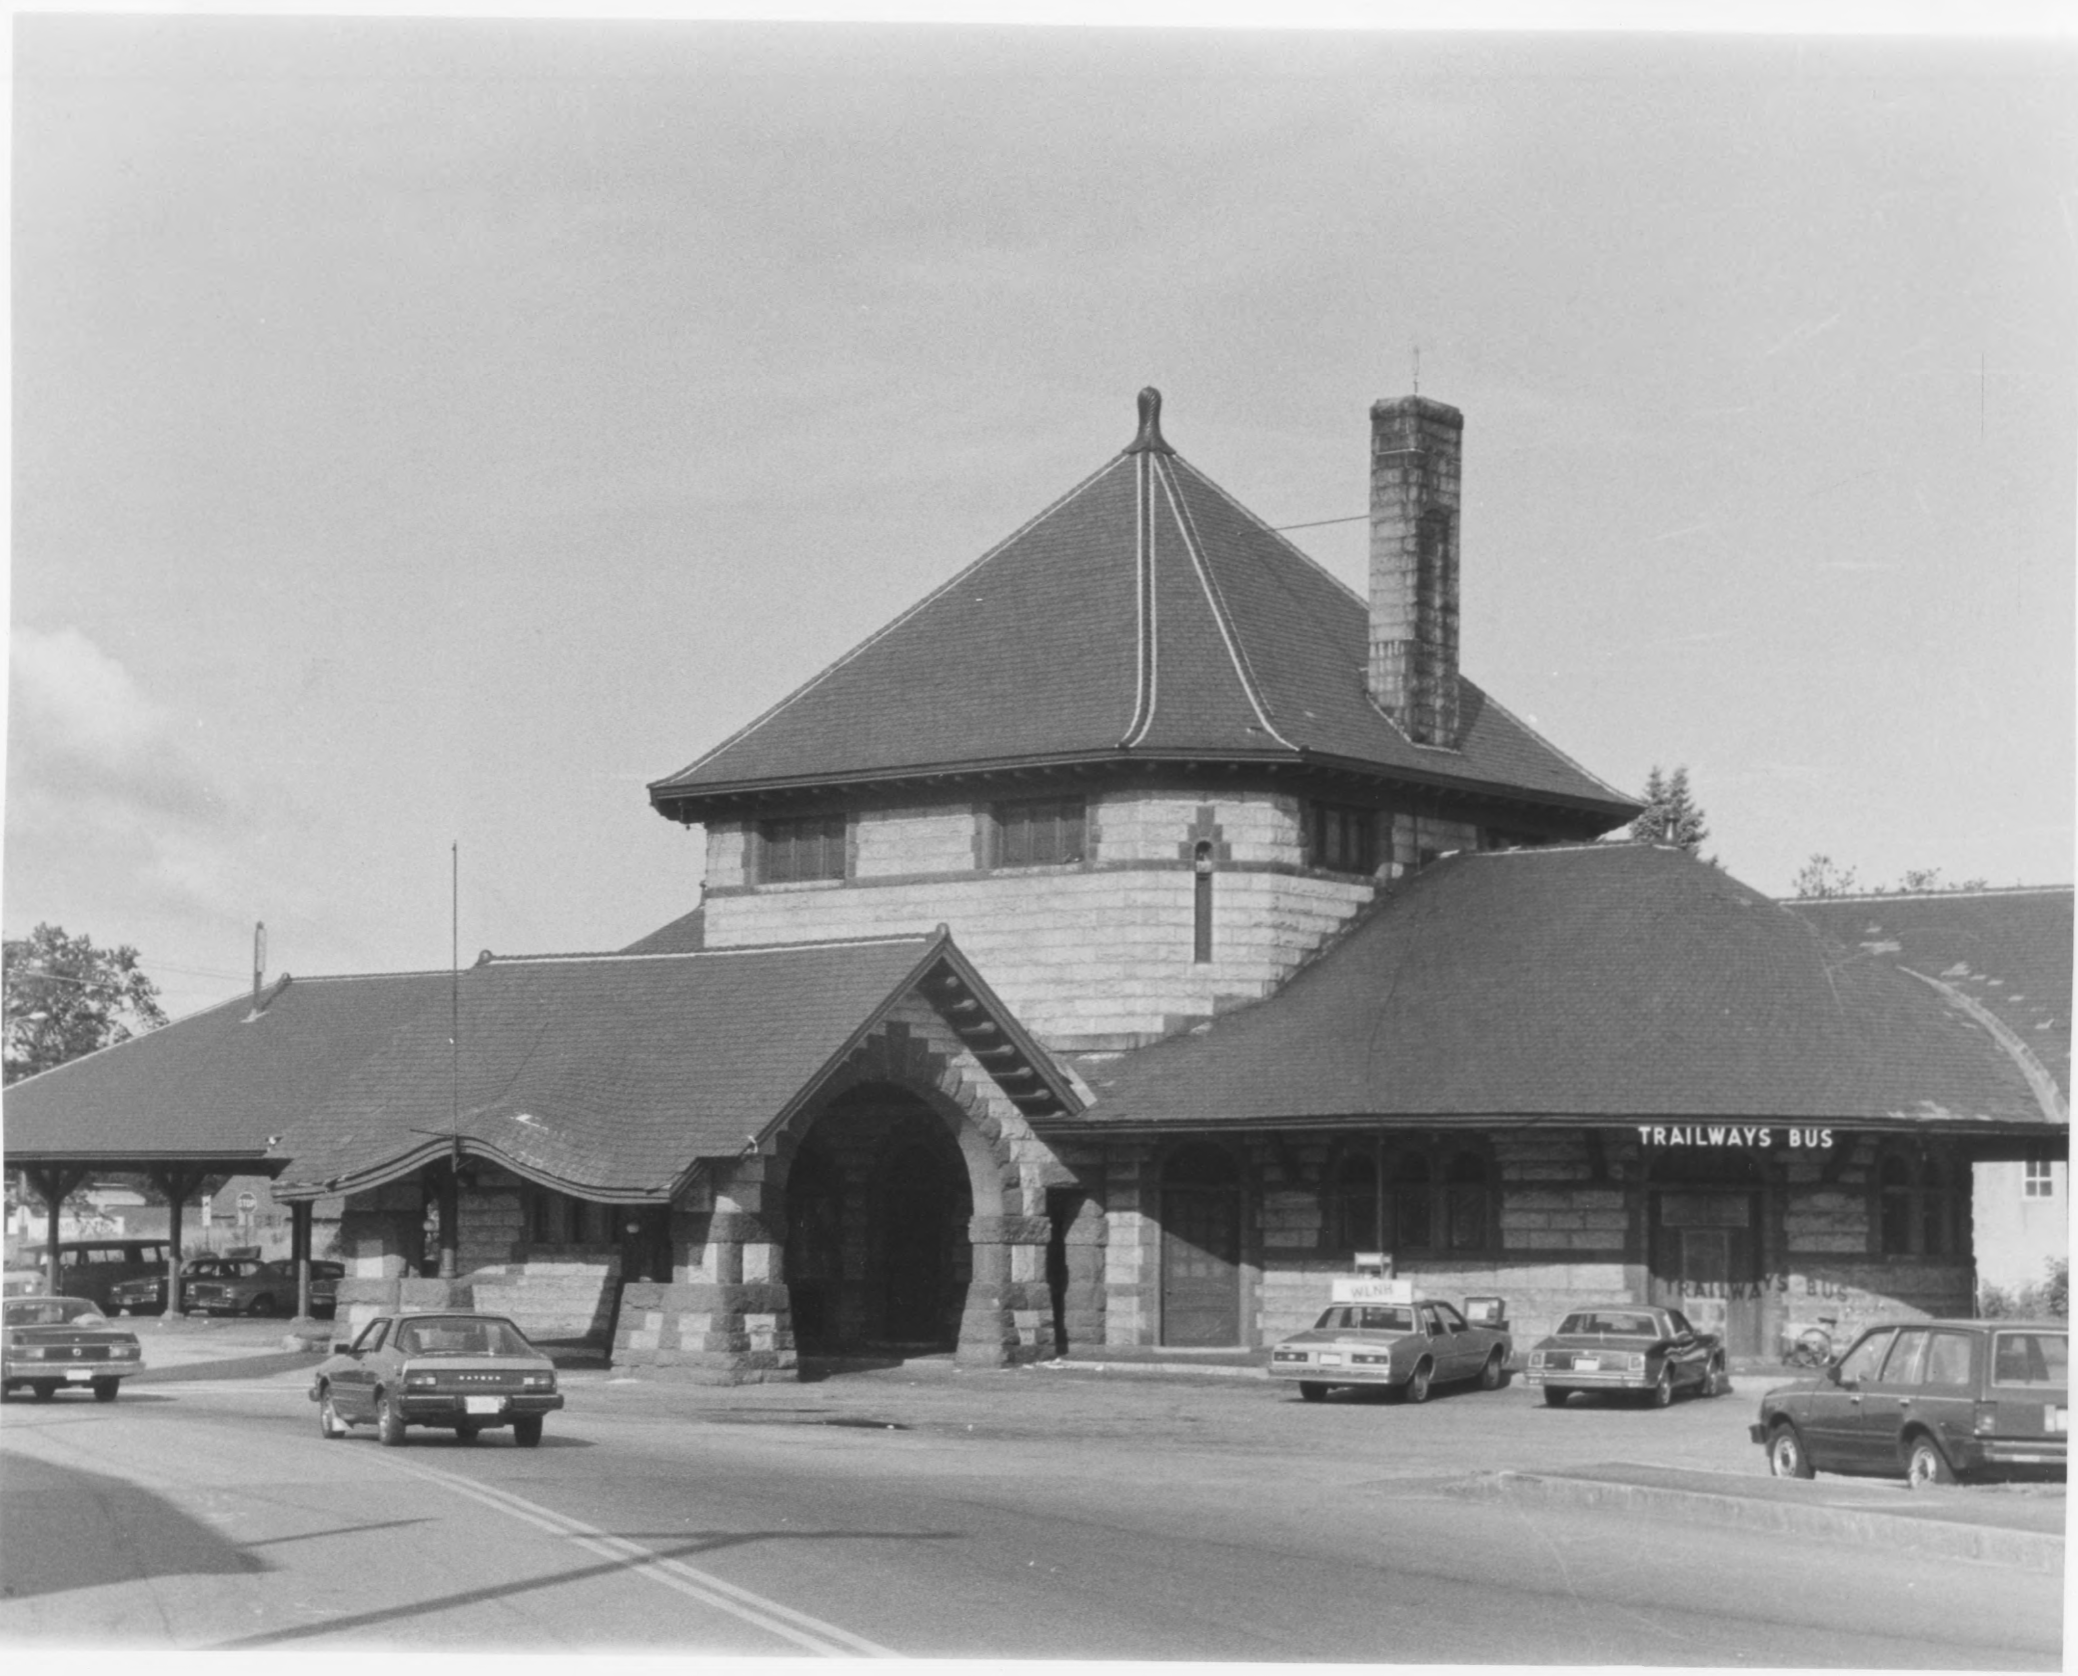 Eastern Exterior of Laconia Station by Roger P. Akeley, Jr. In July of 1981 Provided by NPS NRHP